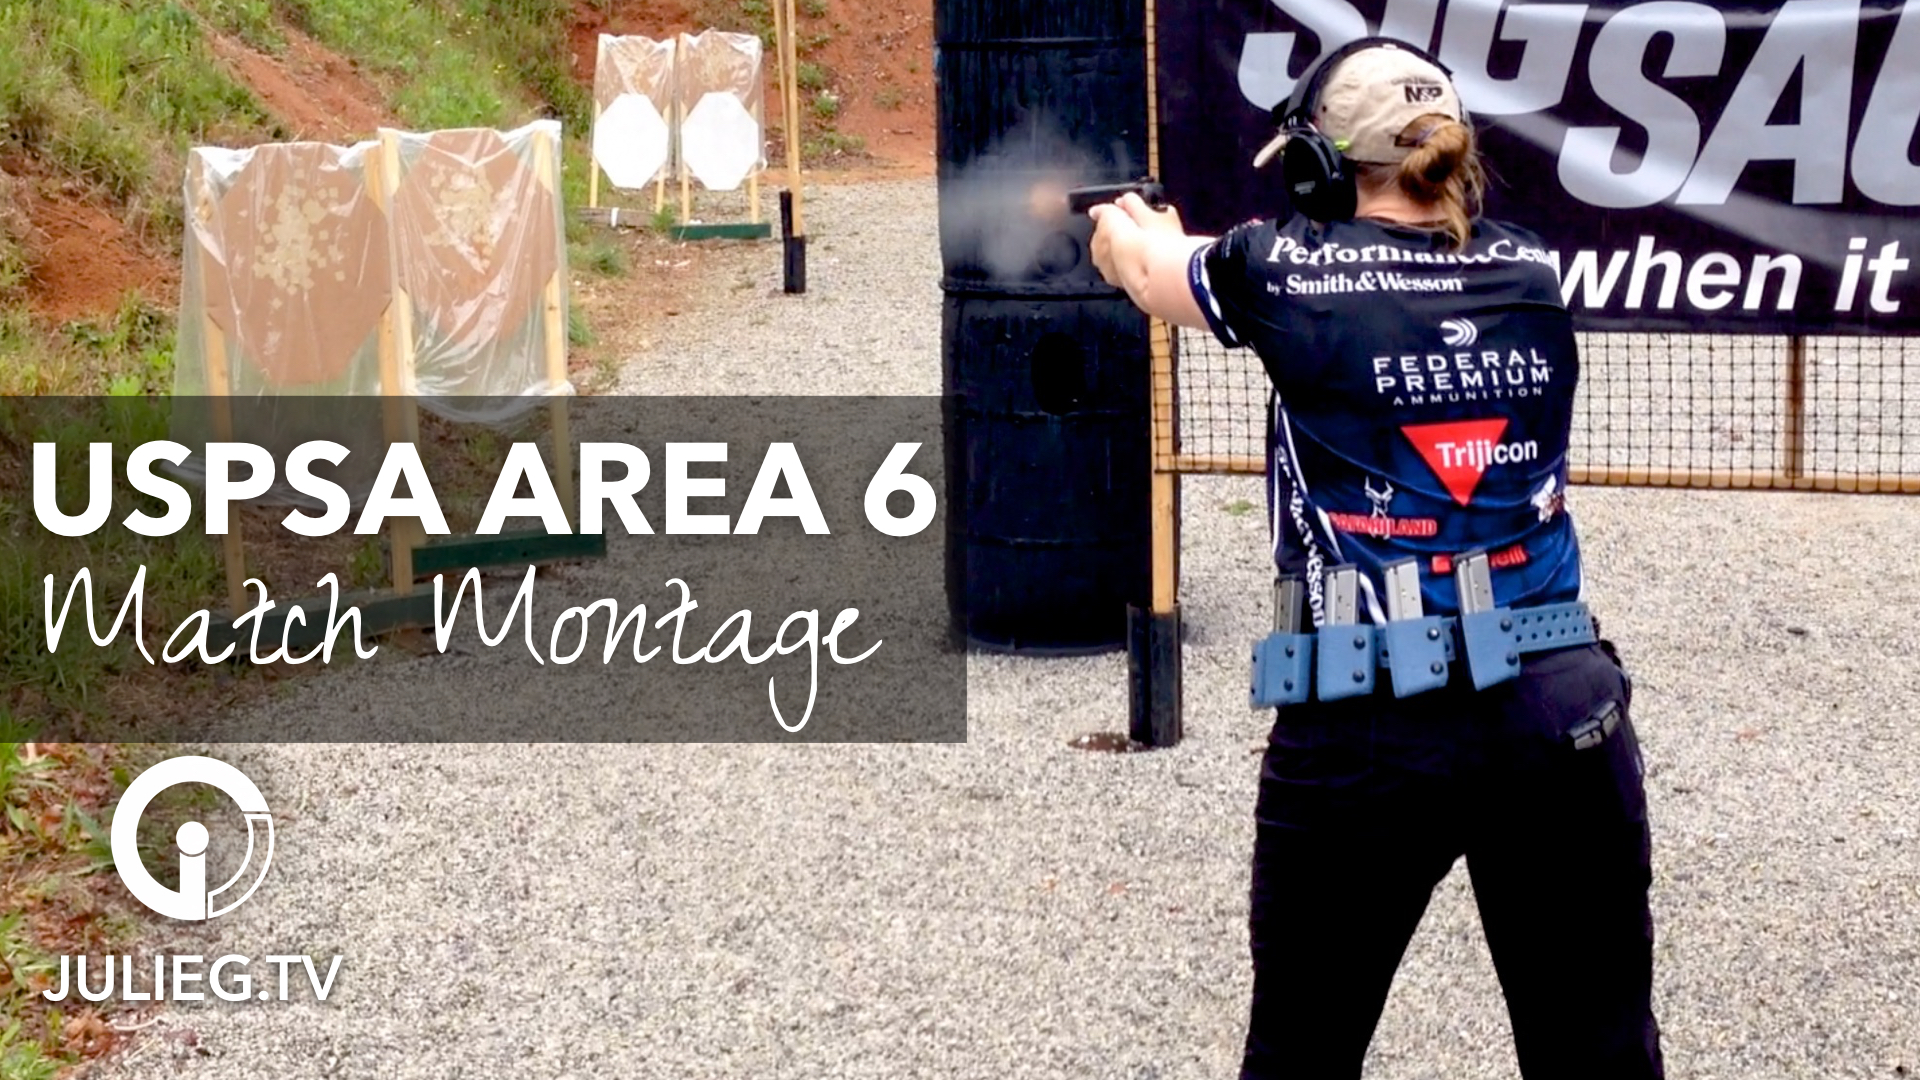 Highlight Reel from USPSA Area 6 | JulieG.TV #sssveda #veda #video